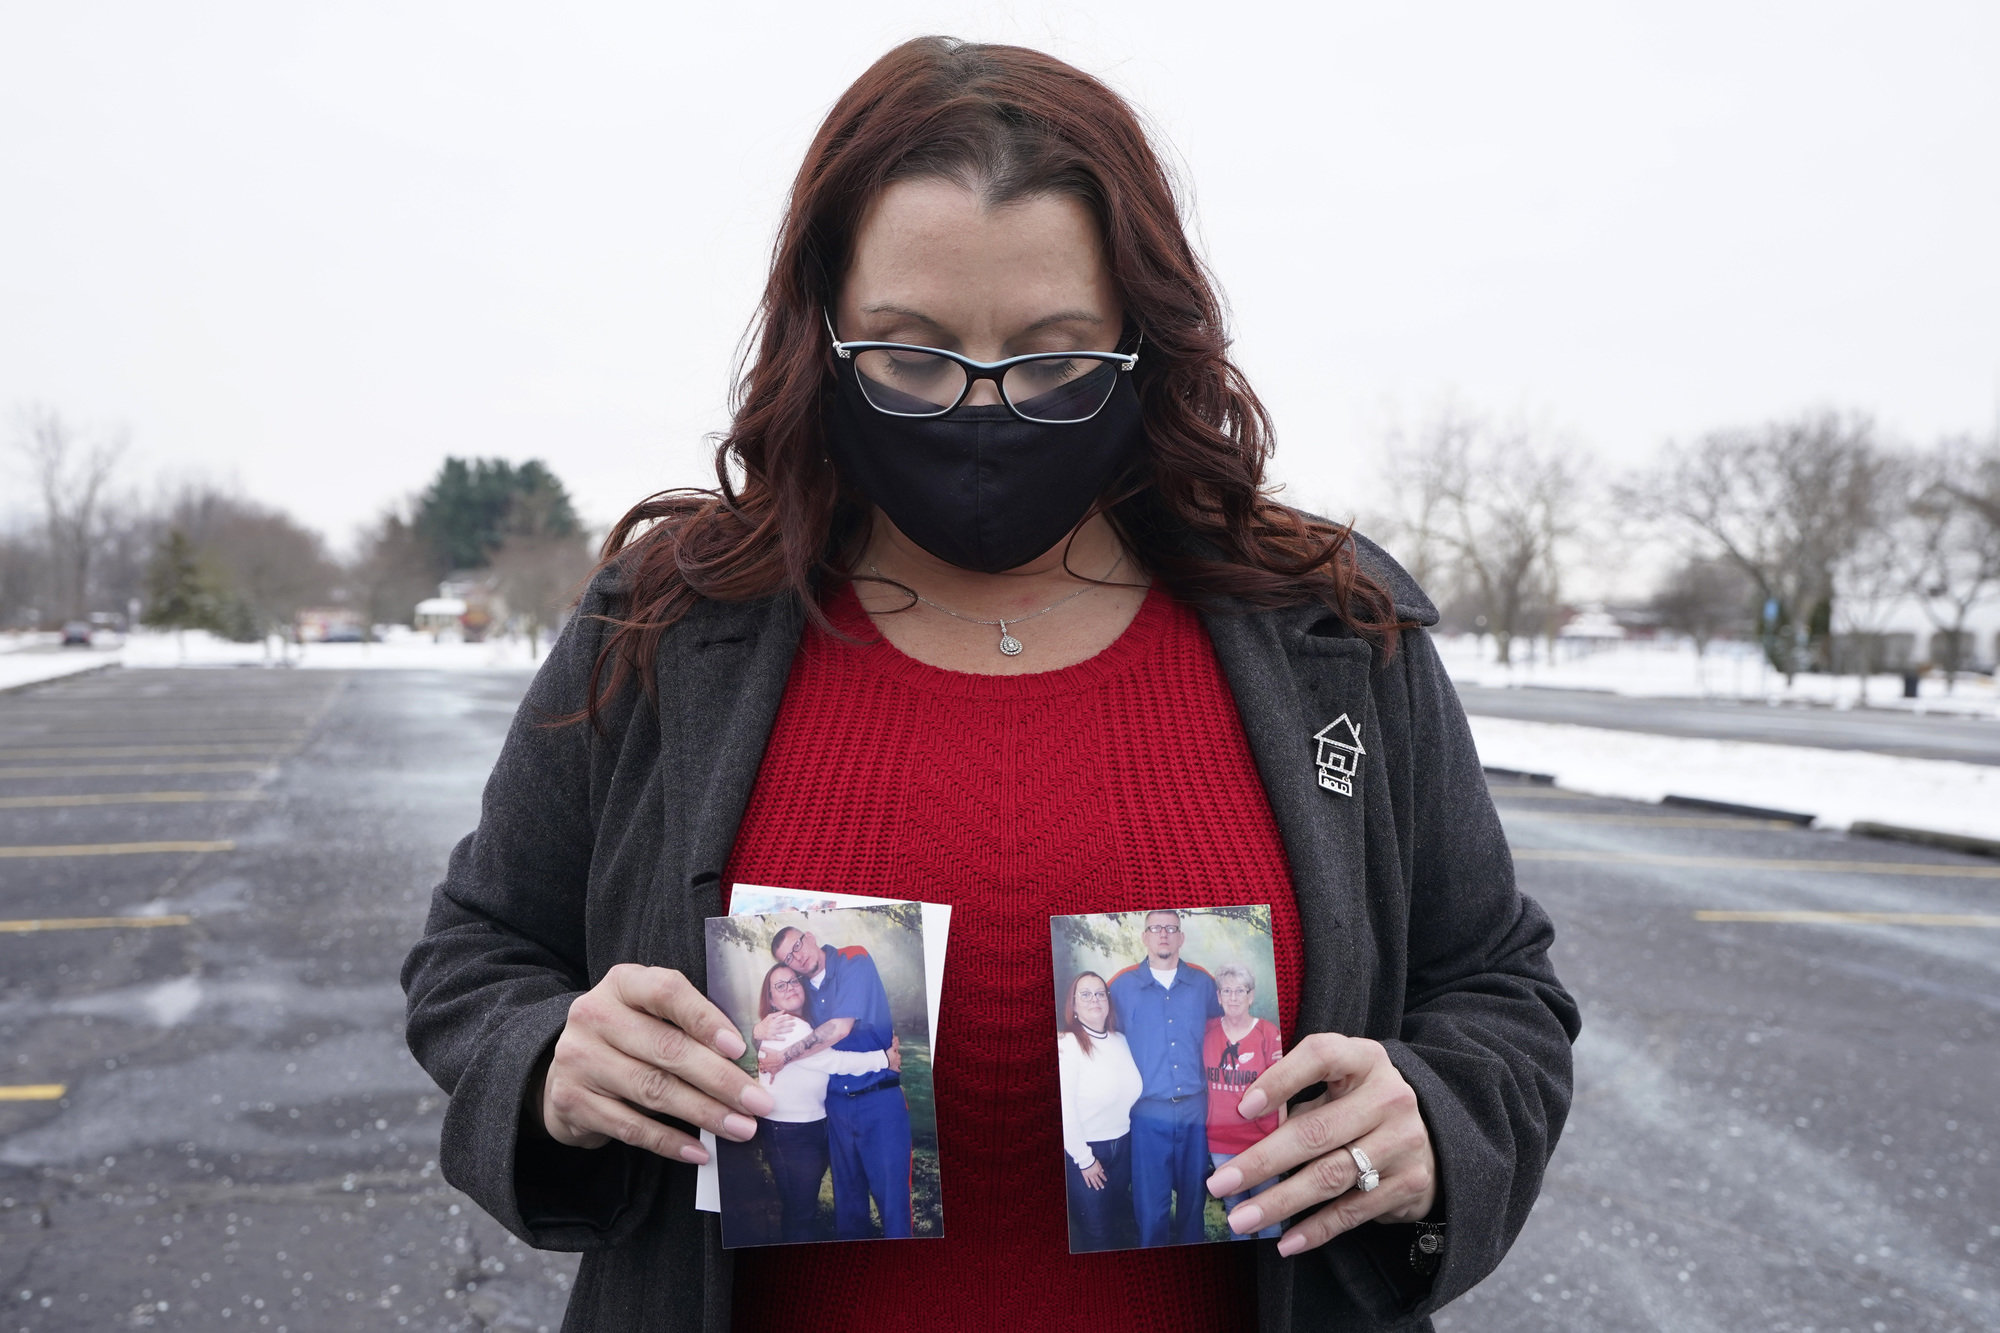 Jennifer Gross holds photos of herself with fiancé Robert Vermett, who is incarcerated at Michigan's Kinross Correctional Facility and recovering from COVID-19.